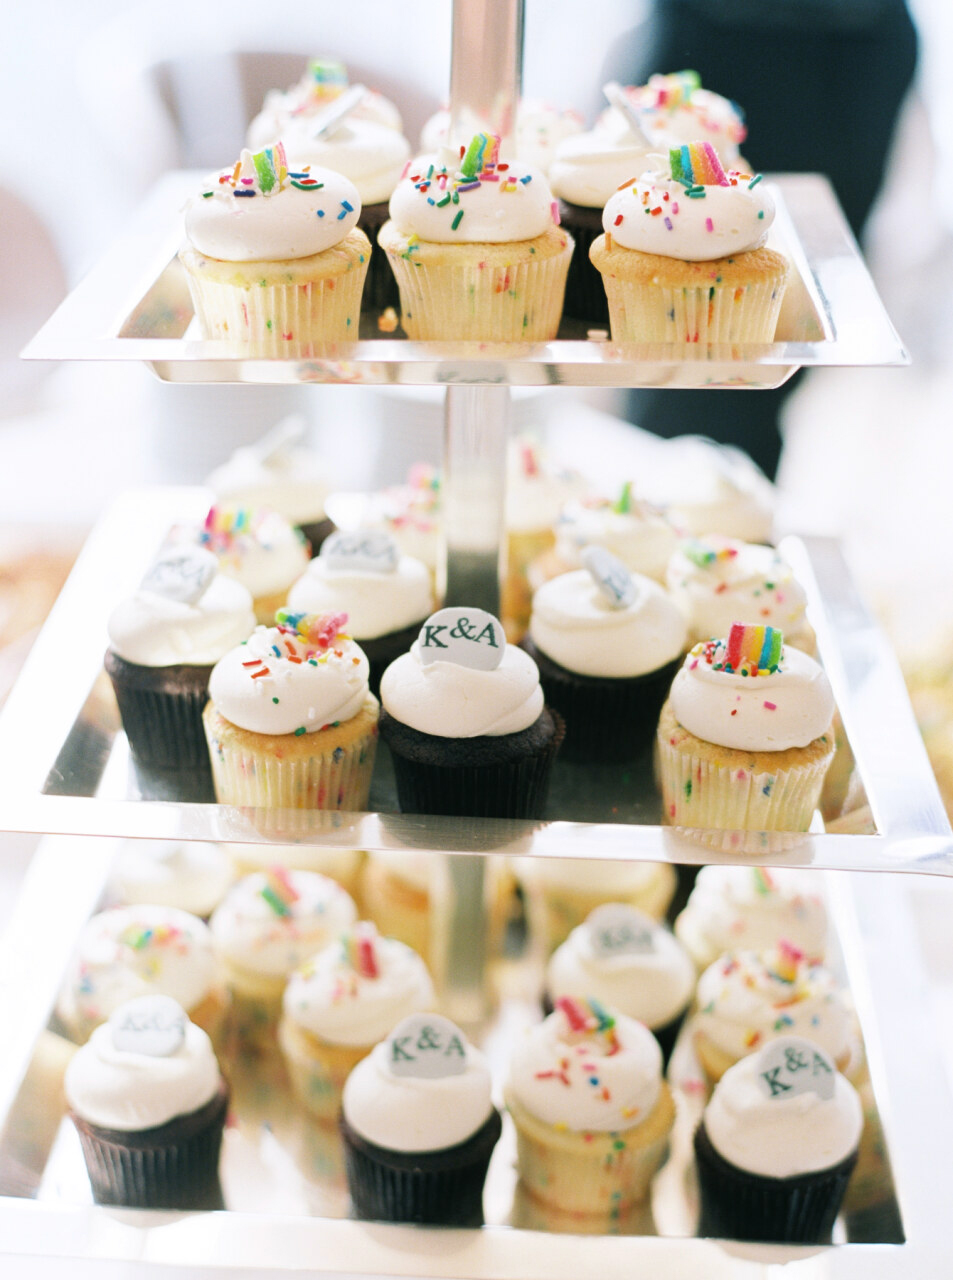 wedding cupcakes with alternating toppers of rainbows and embossed initials